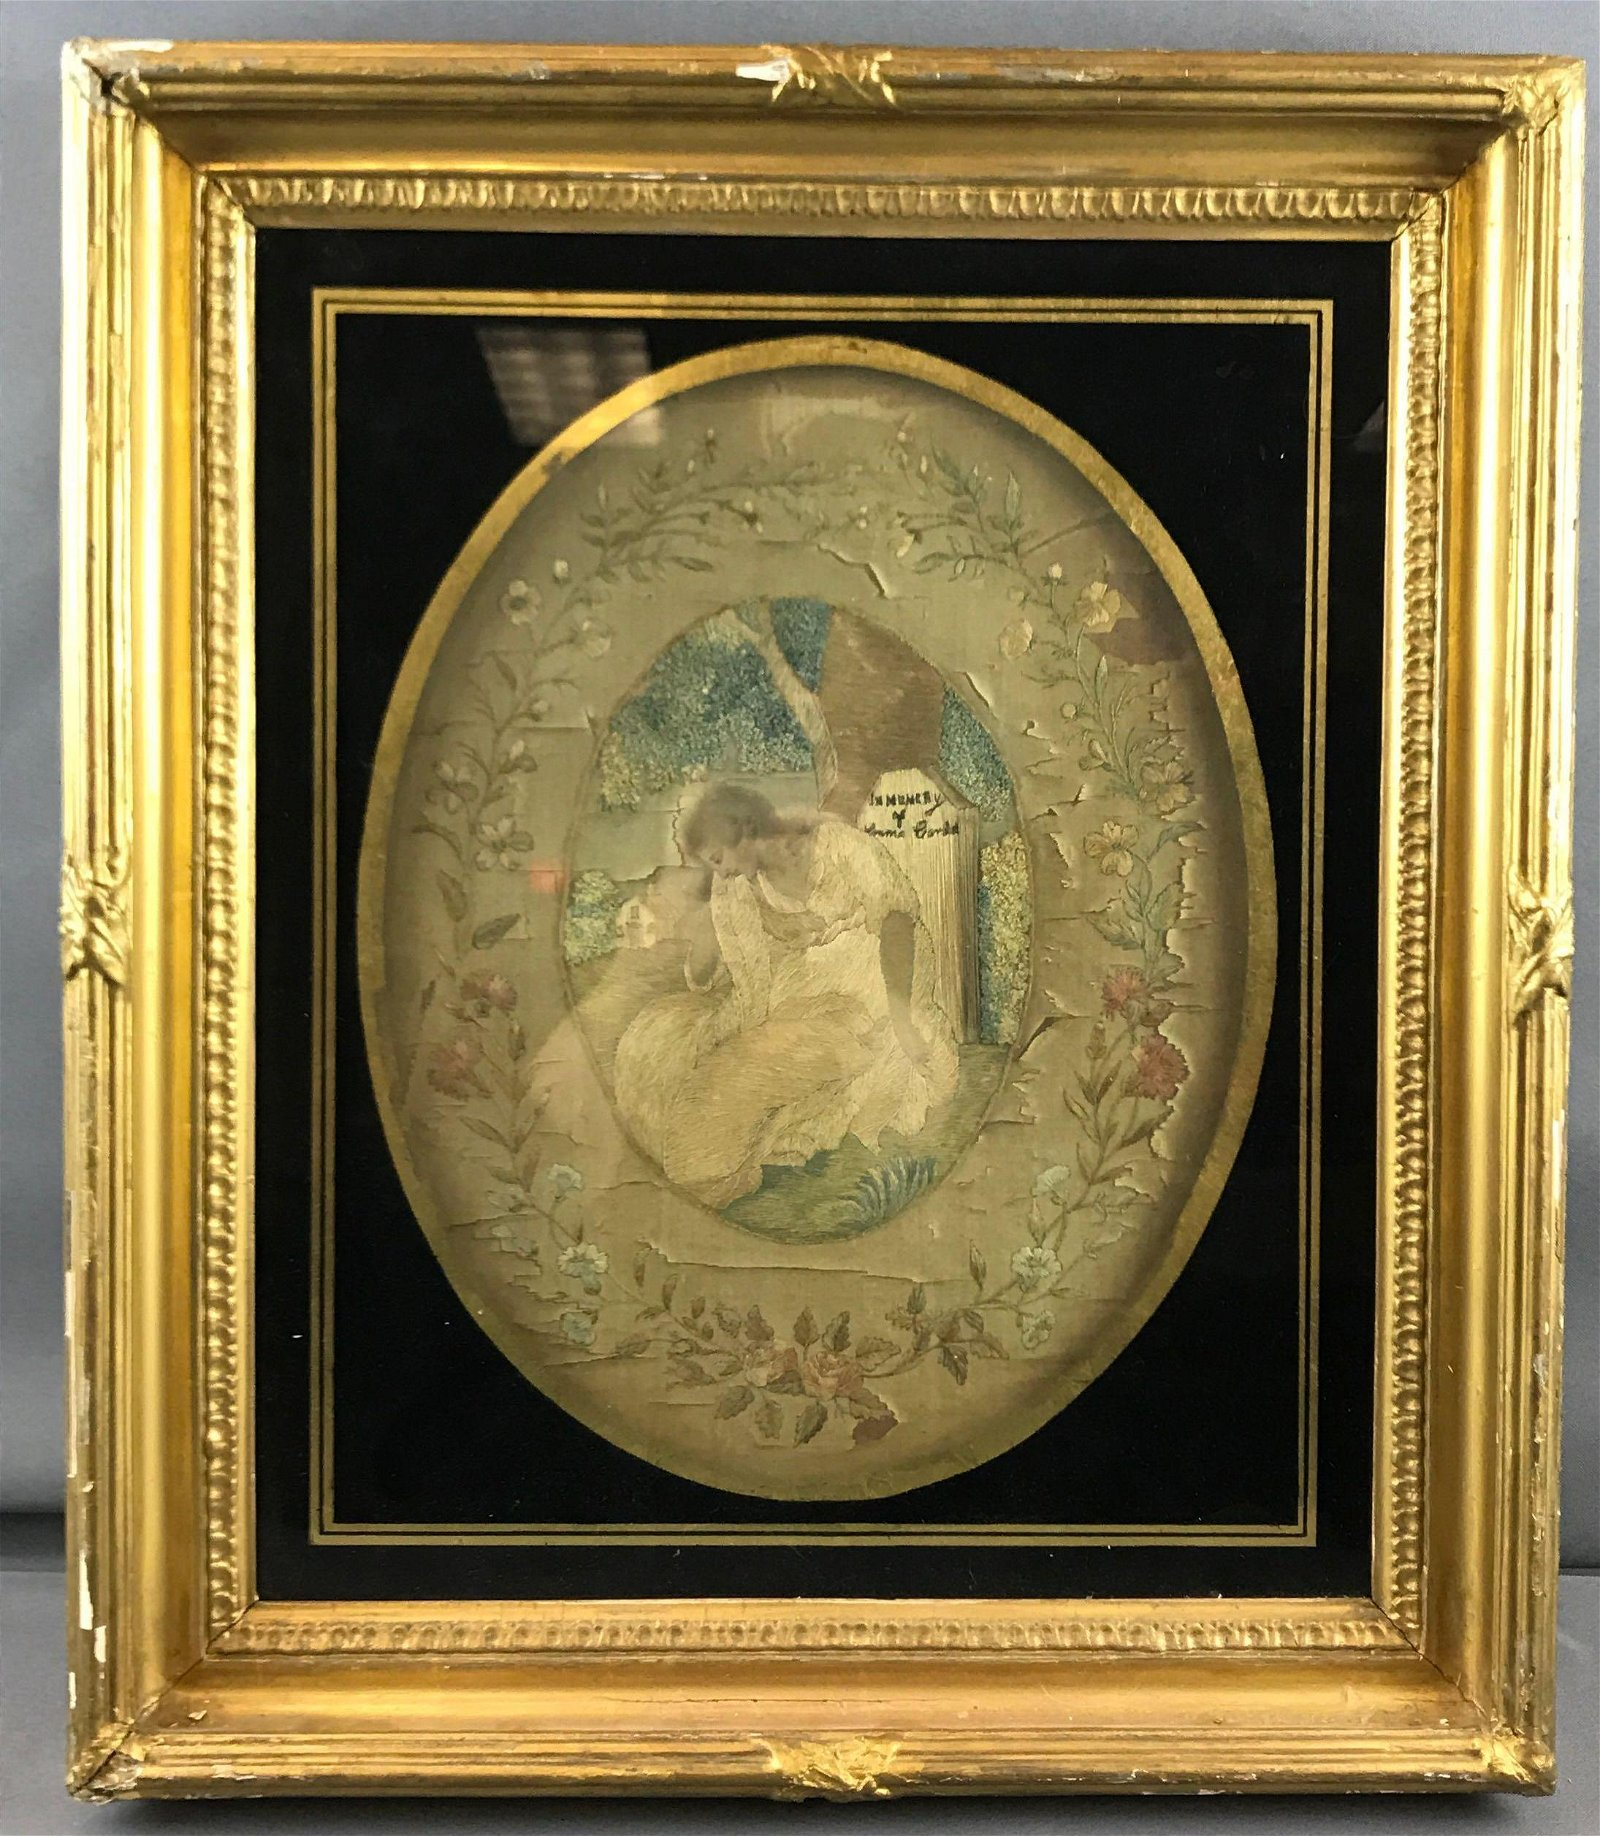 Antique framed silk embroidered mourning picture